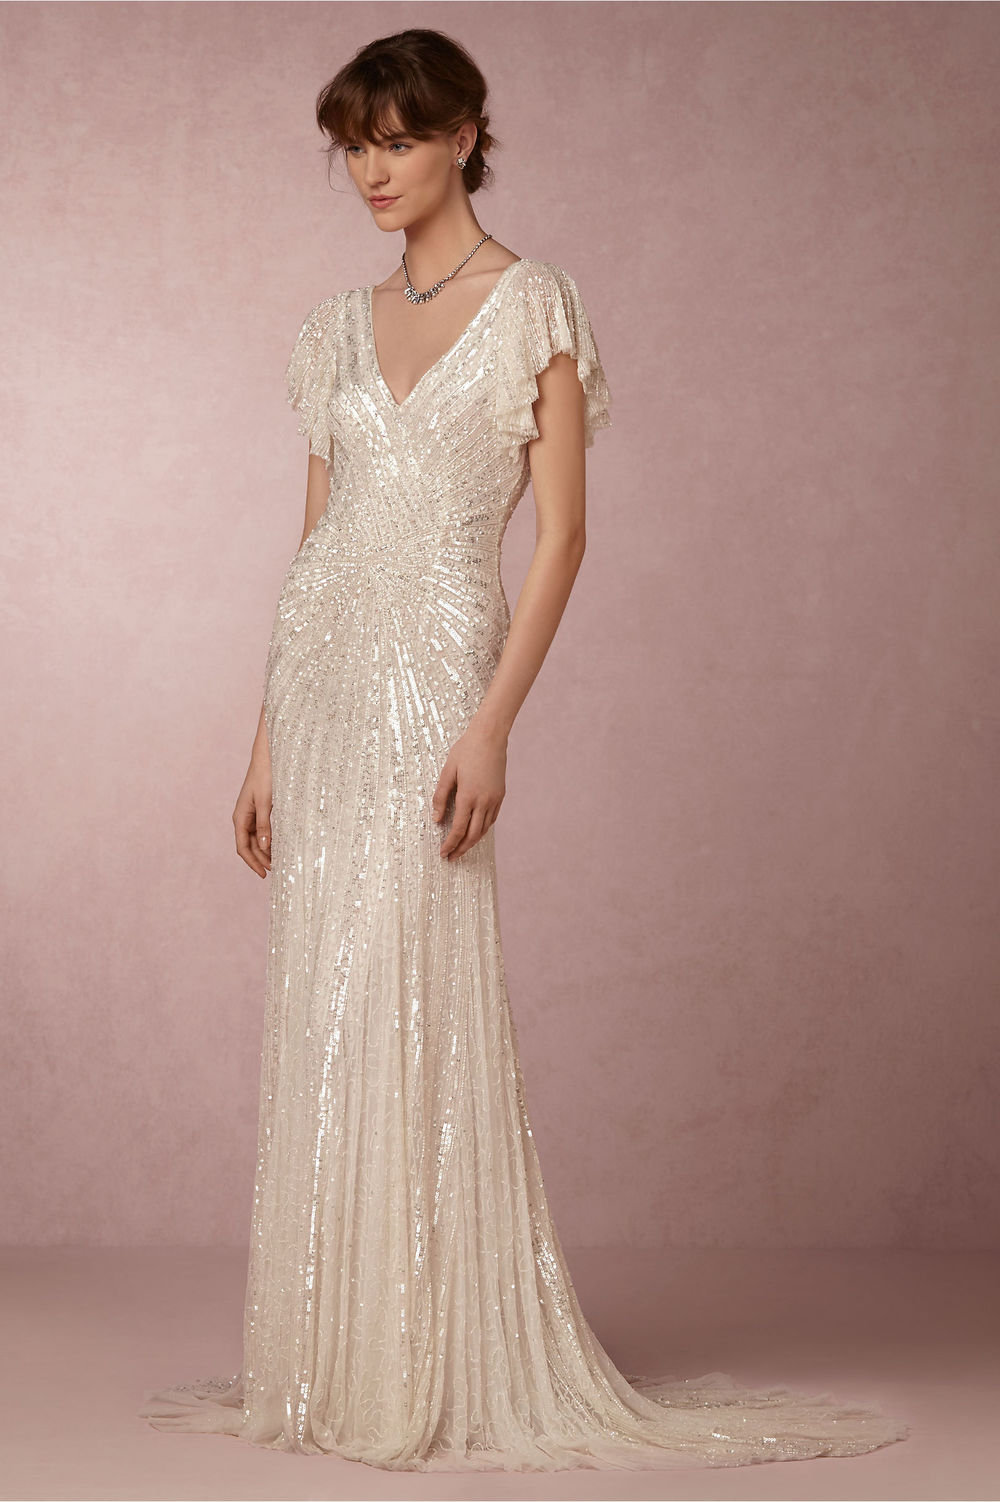 Gorgeous Sequined Cibella Wedding Gown from BHLDN / from 14 Ways Real Brides Plan to Sparkle on their Wedding Day